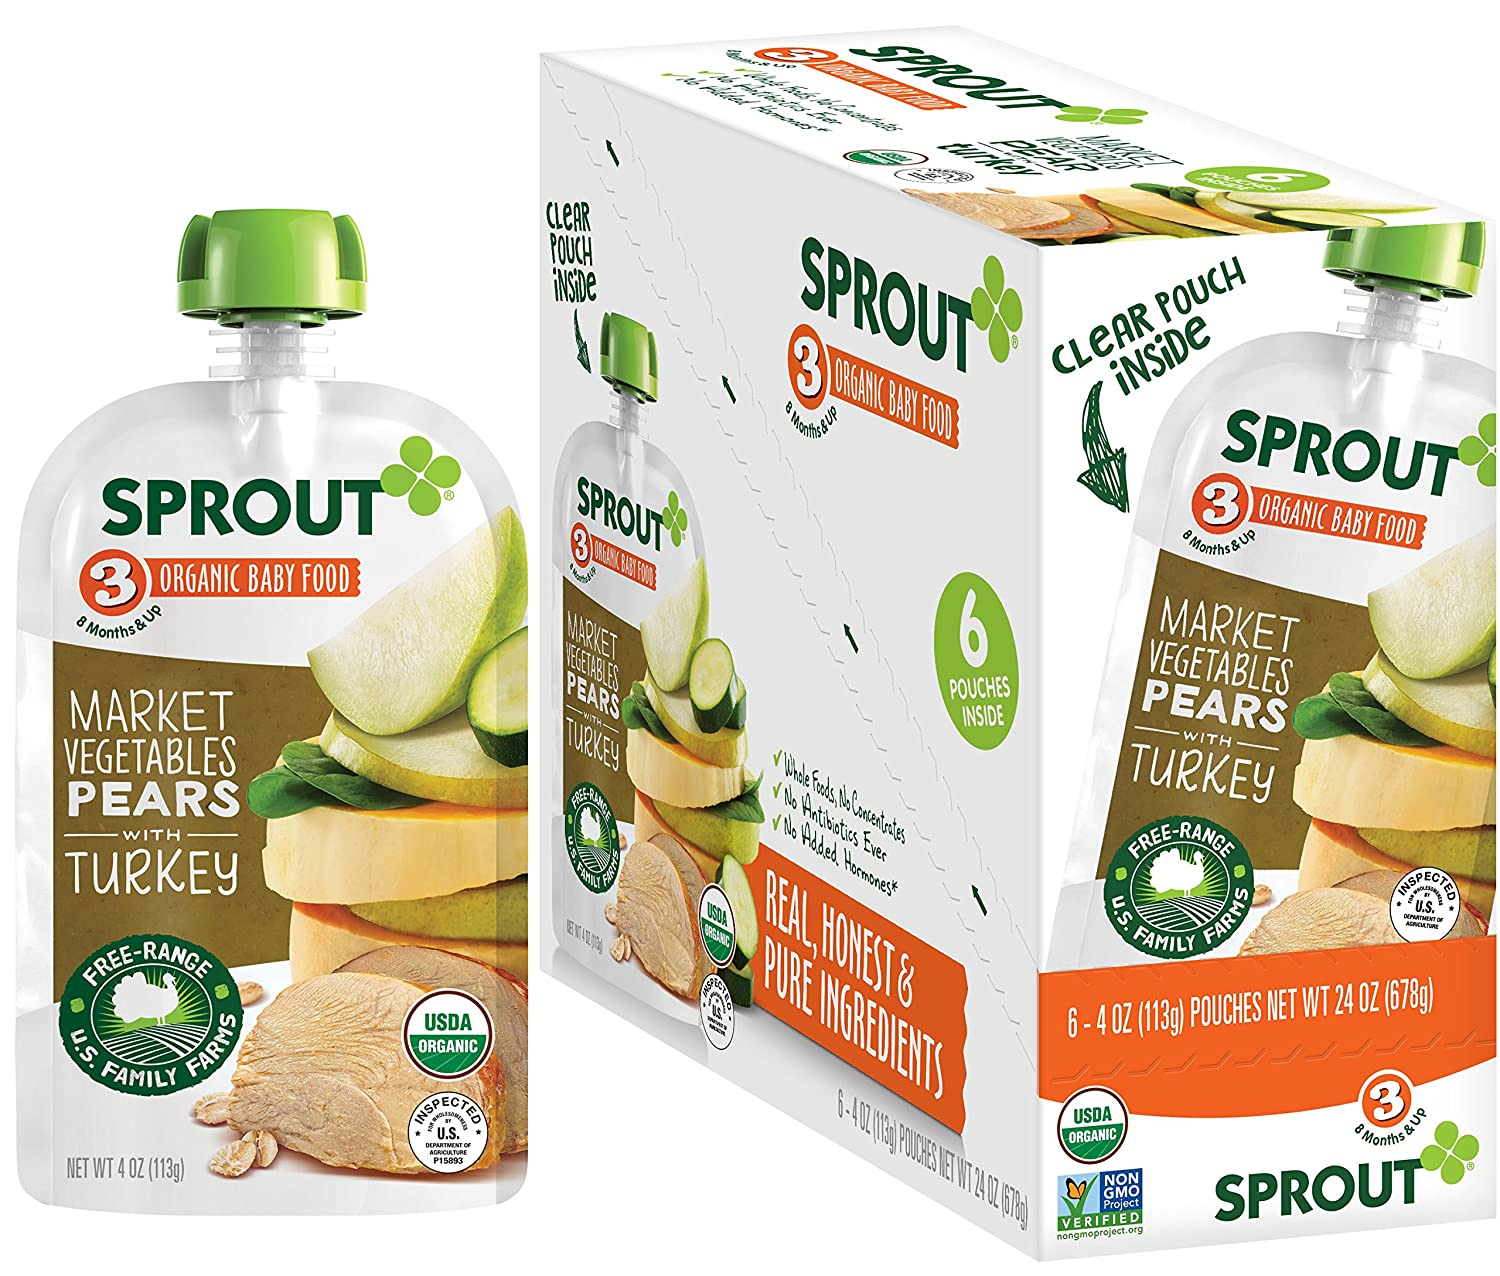 Sprout Organic Stage 3 Baby Food Pouches, Market Vegetables Pears w/ Turkey, 4 Ounce (Pack of 12)